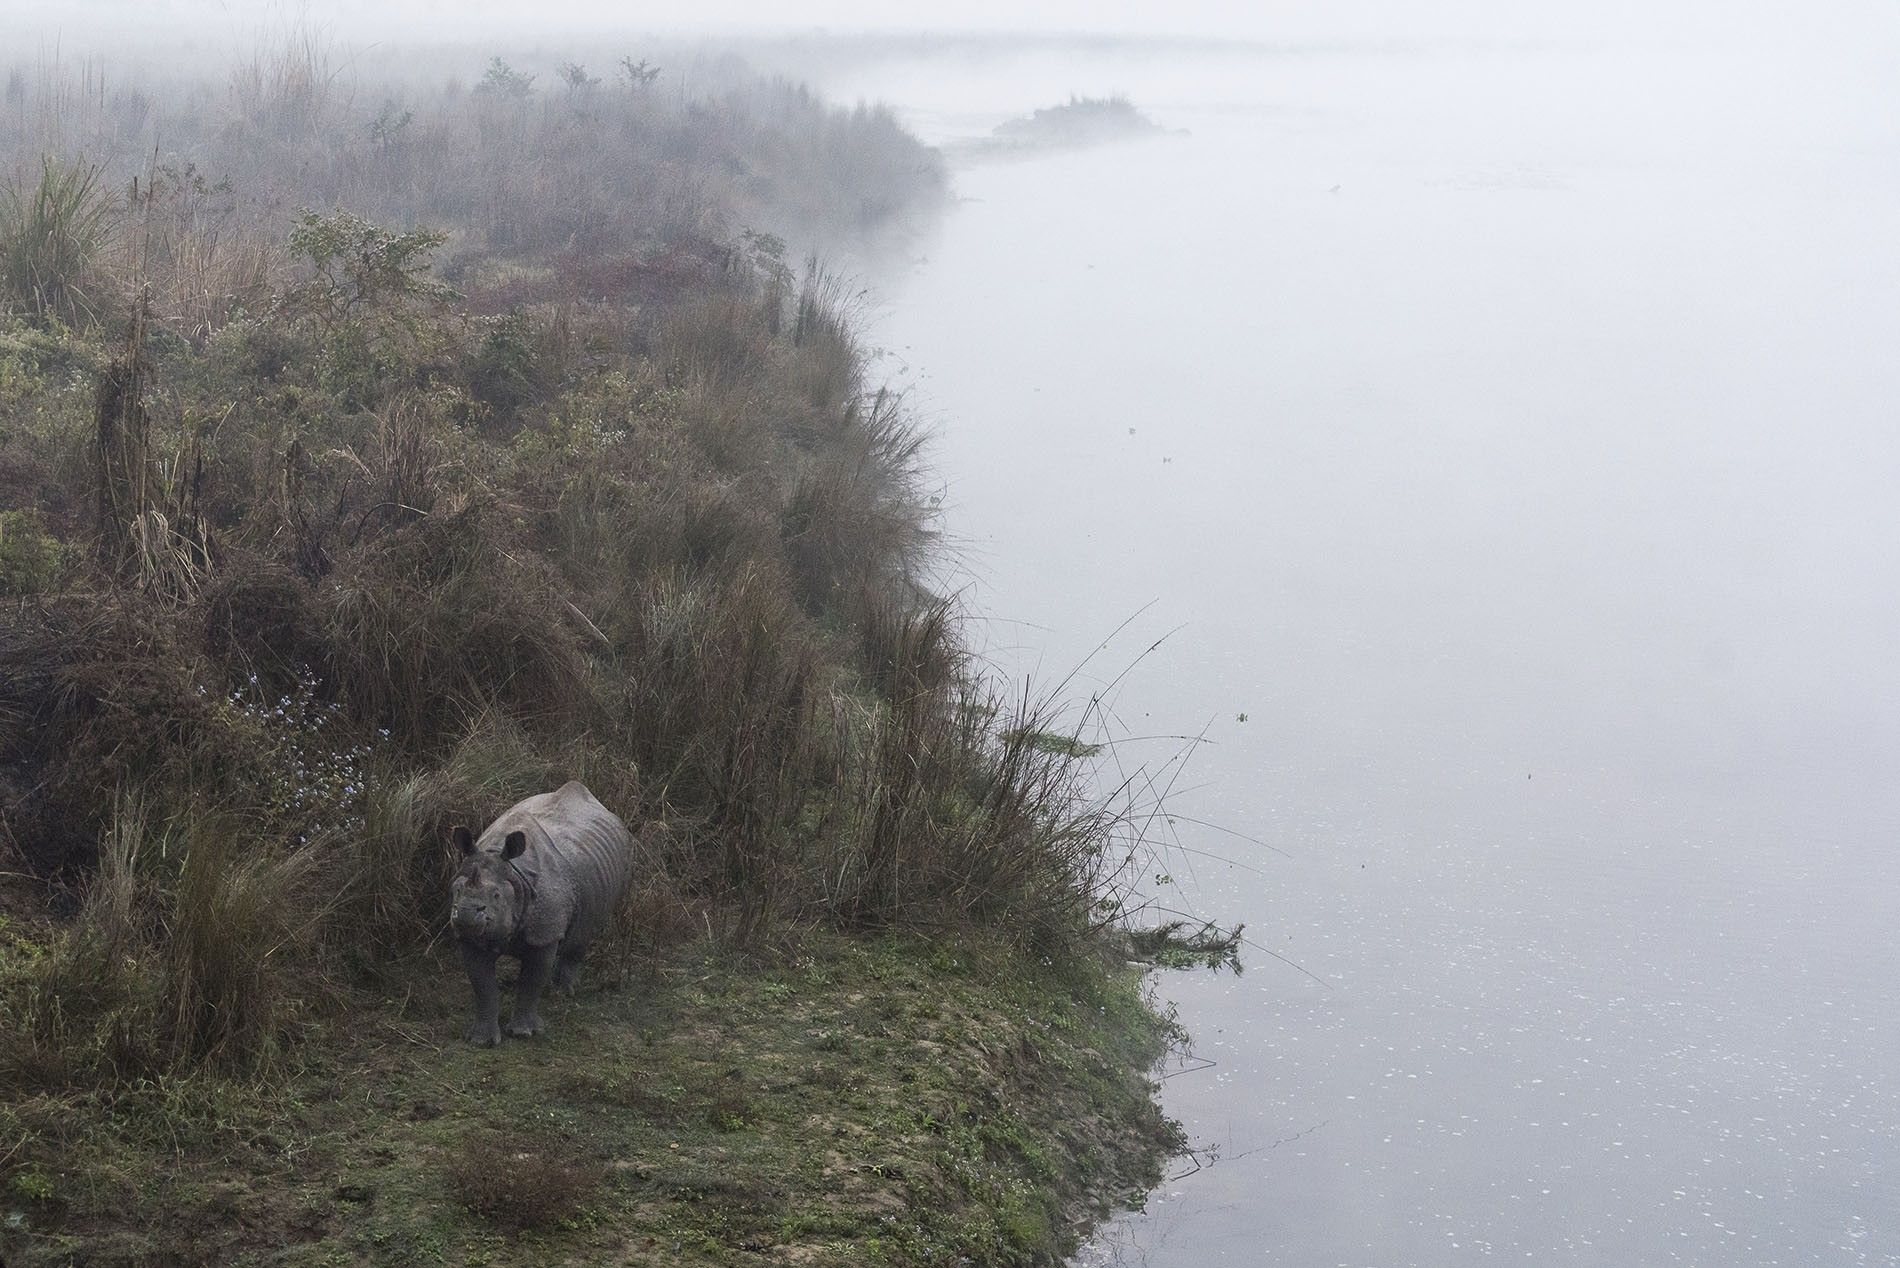 Rhino in the early morning mist, Chitwan National Park.